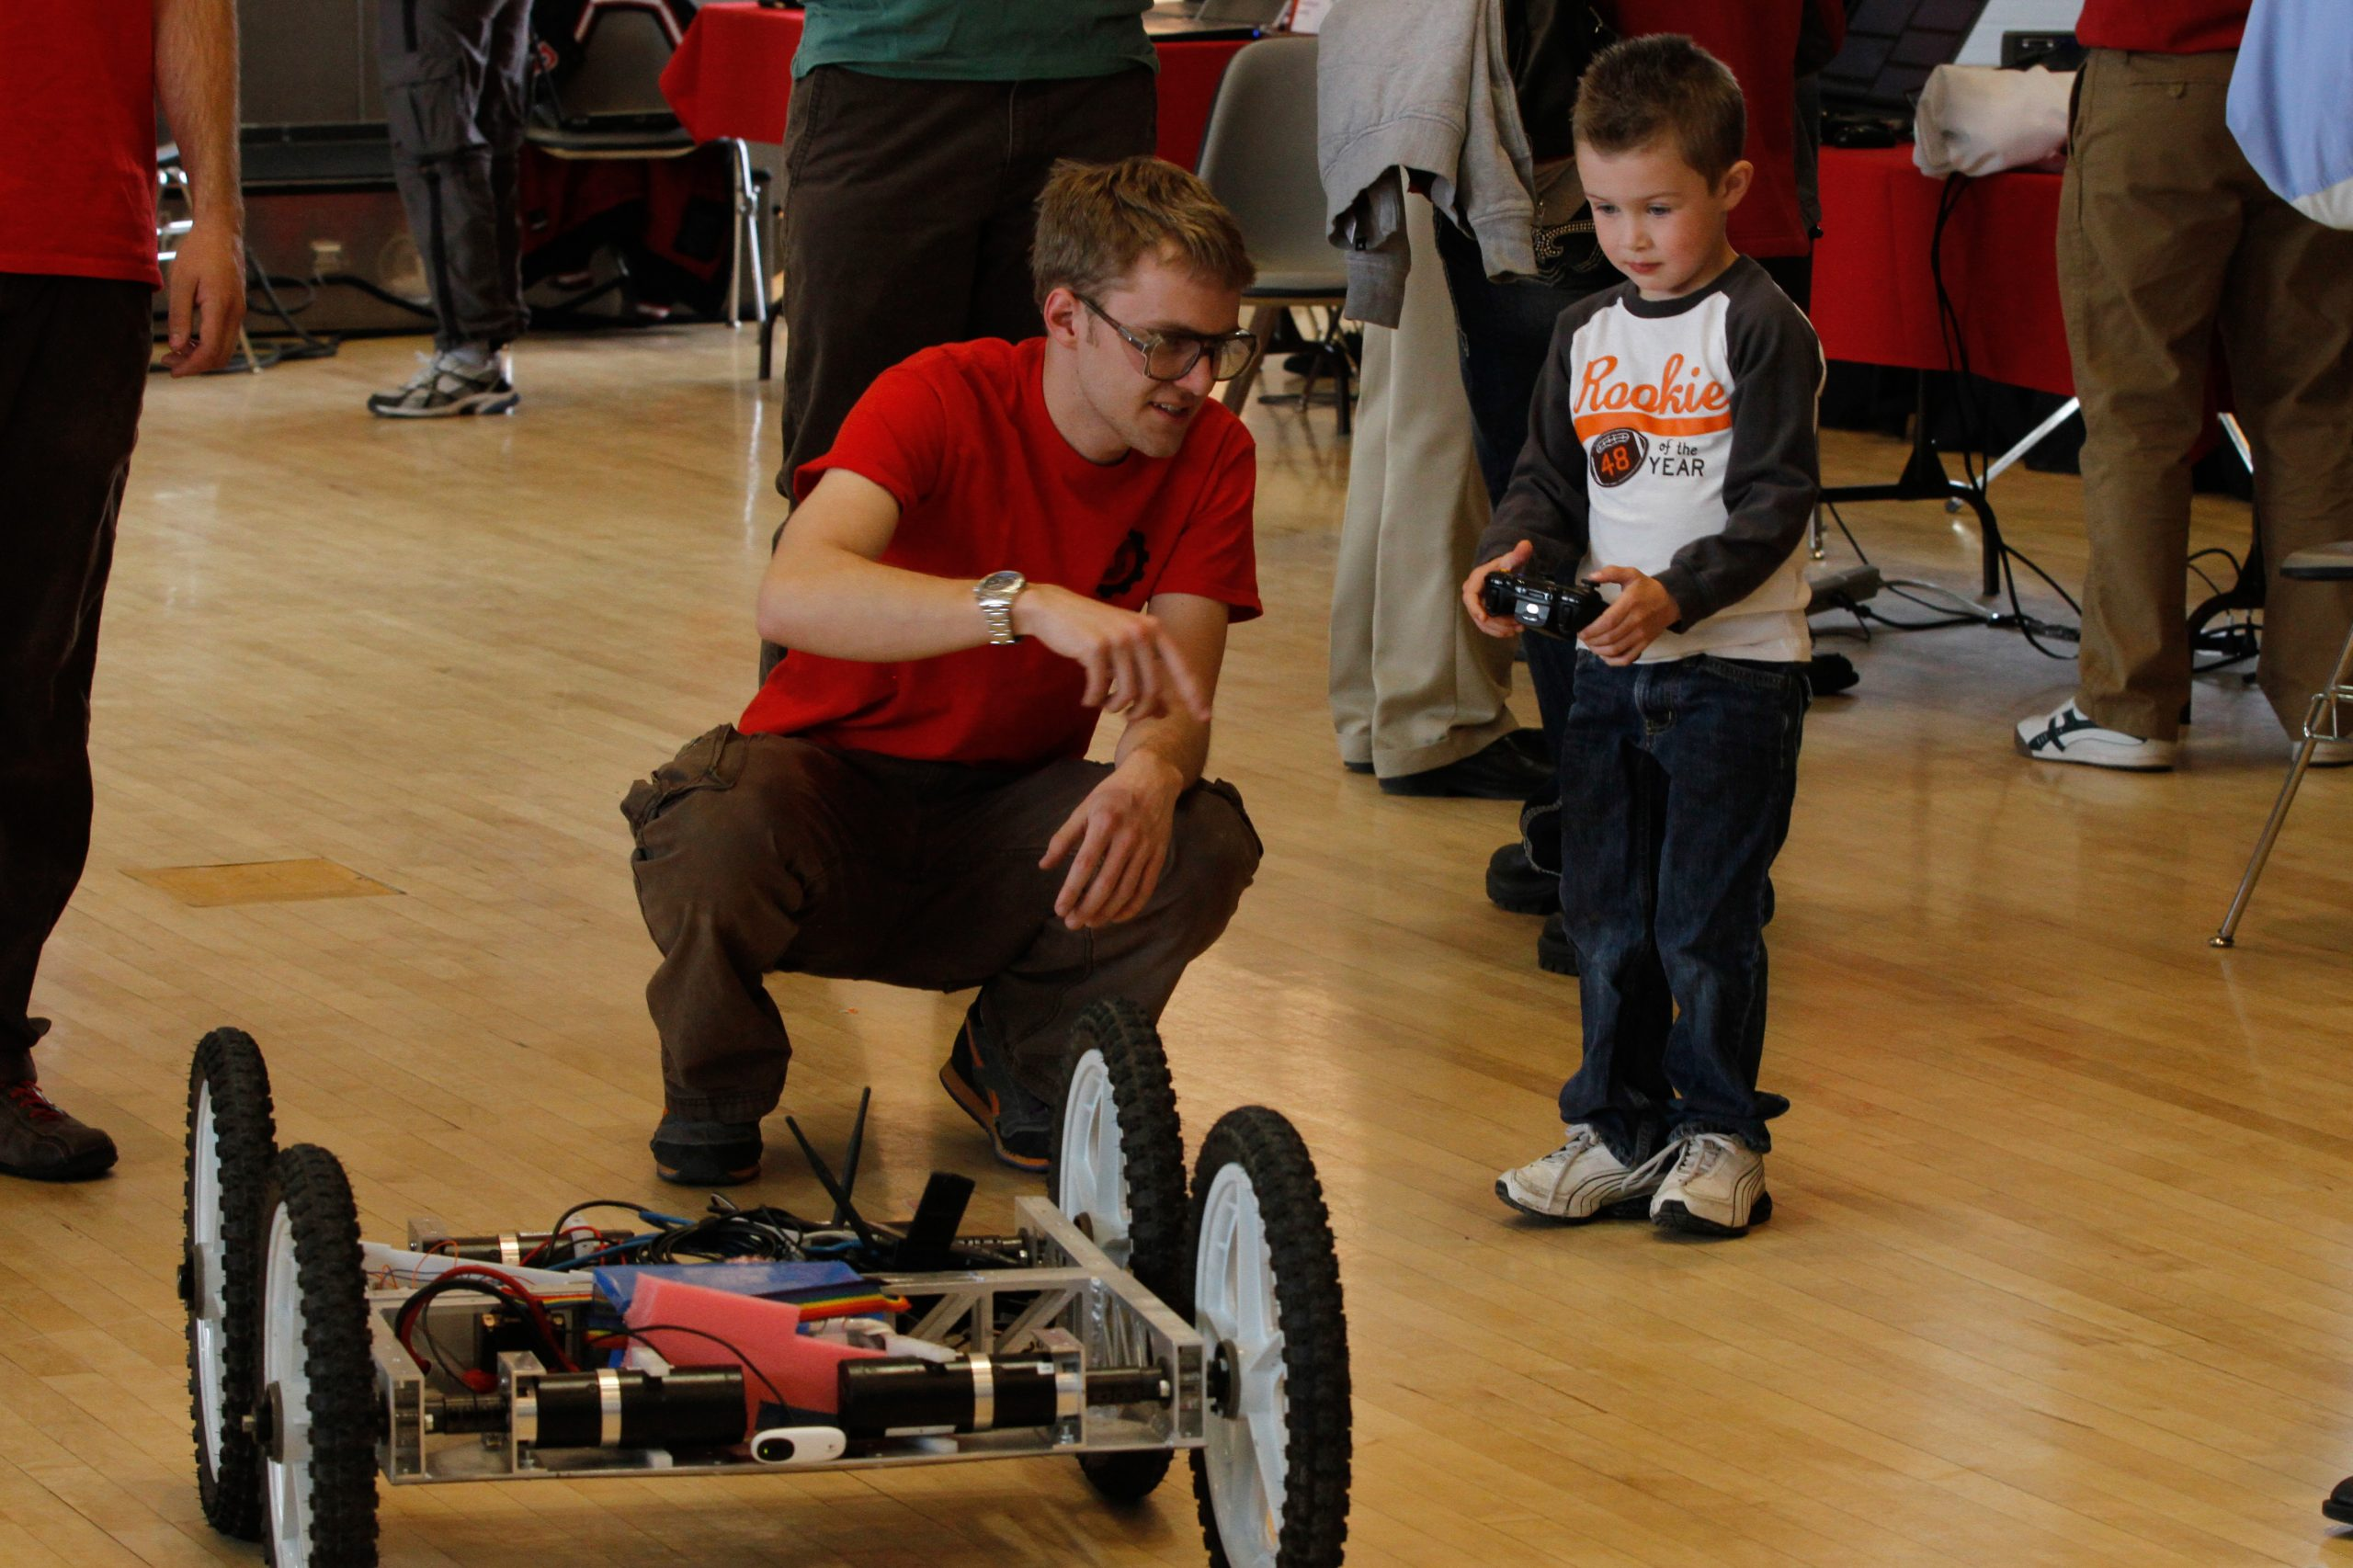 University of Utah mechanical engineering students will be showing off their senior projects during the department's annual Design Day 2015, which will be held Thursday, April 23, 2015, at the University of Utah's Student Union.